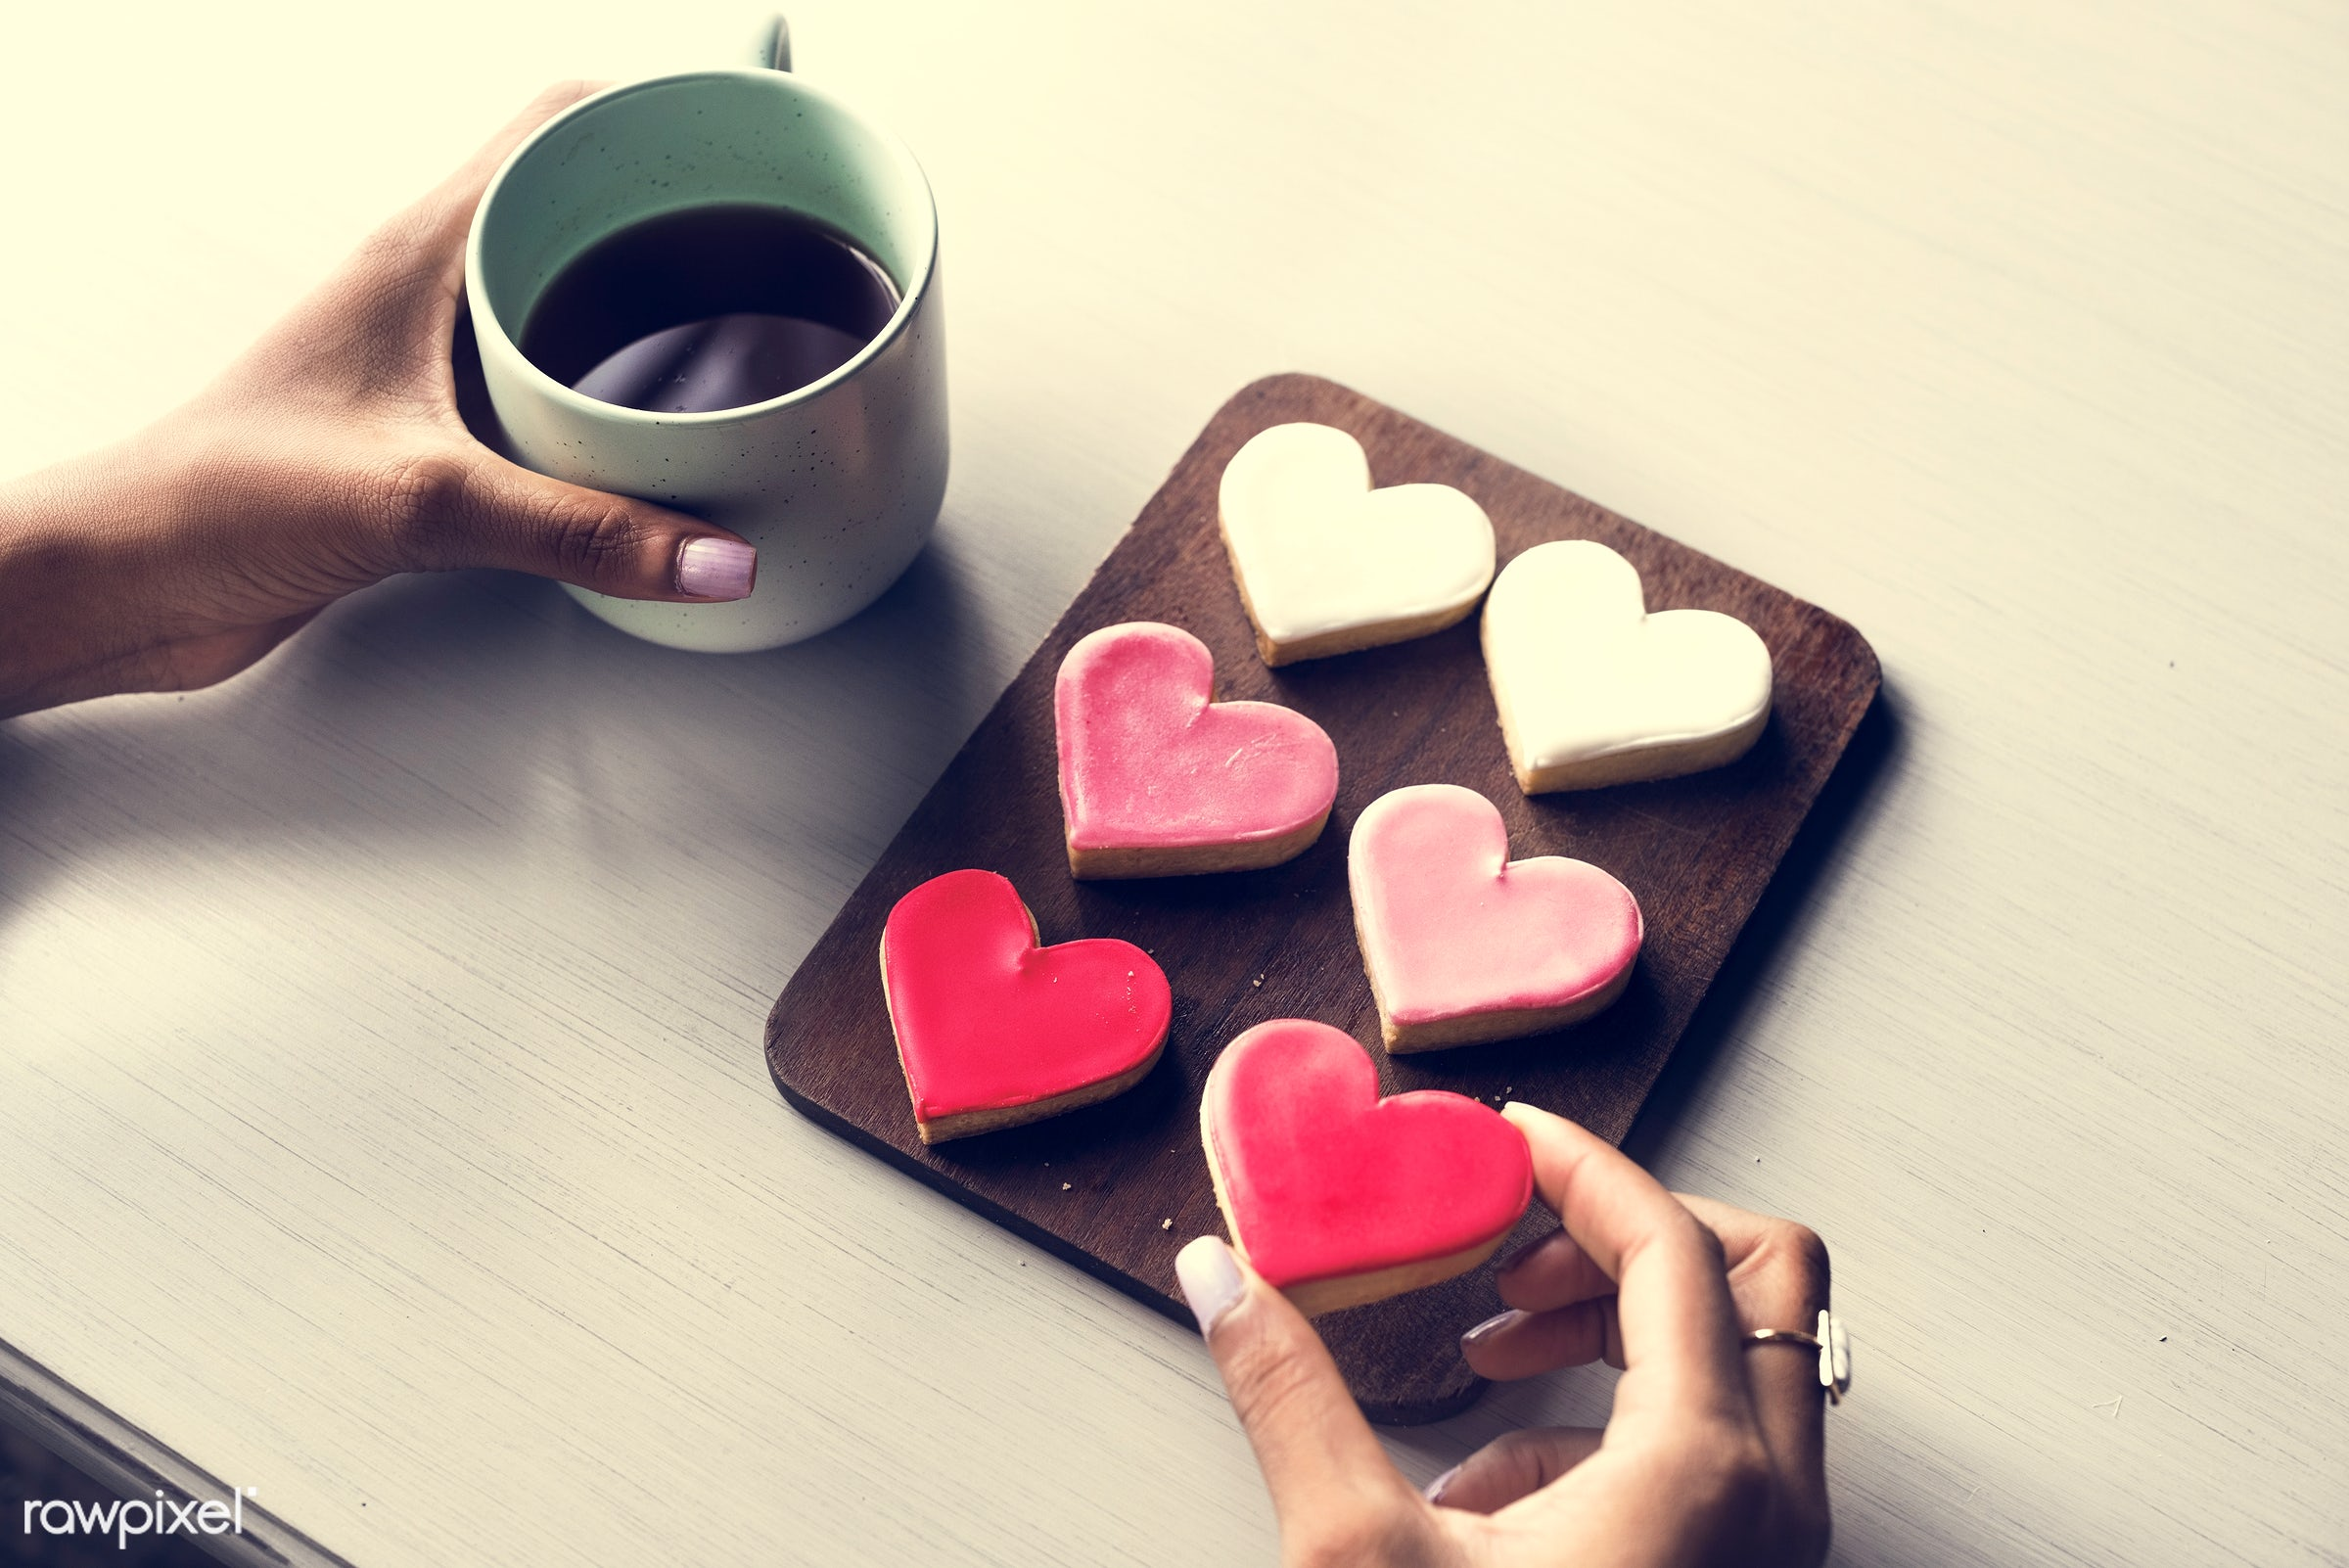 adult, bakery, beverage, break, cafe, caffeine, chill, coffee, cookies, cup, drink, flowers, hand, hands, heart, hobby, hold...